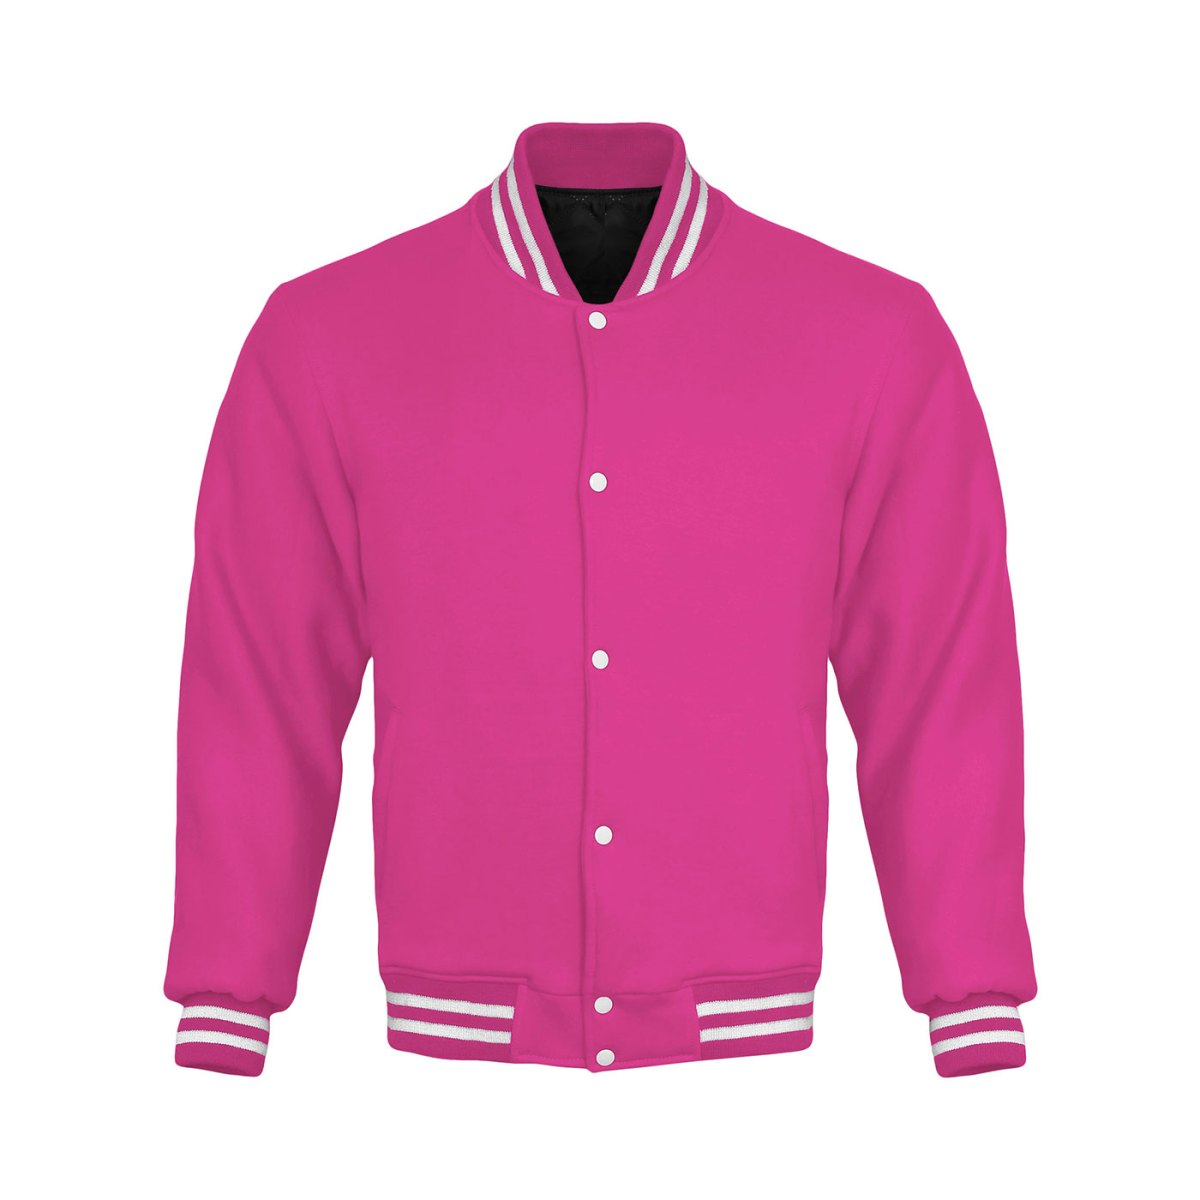 Shop for Ladies New York Yankees jackets at the official online store of Major League Baseball. Browse our wide selection of Yankees Ladies pullovers, coats, track jackets.